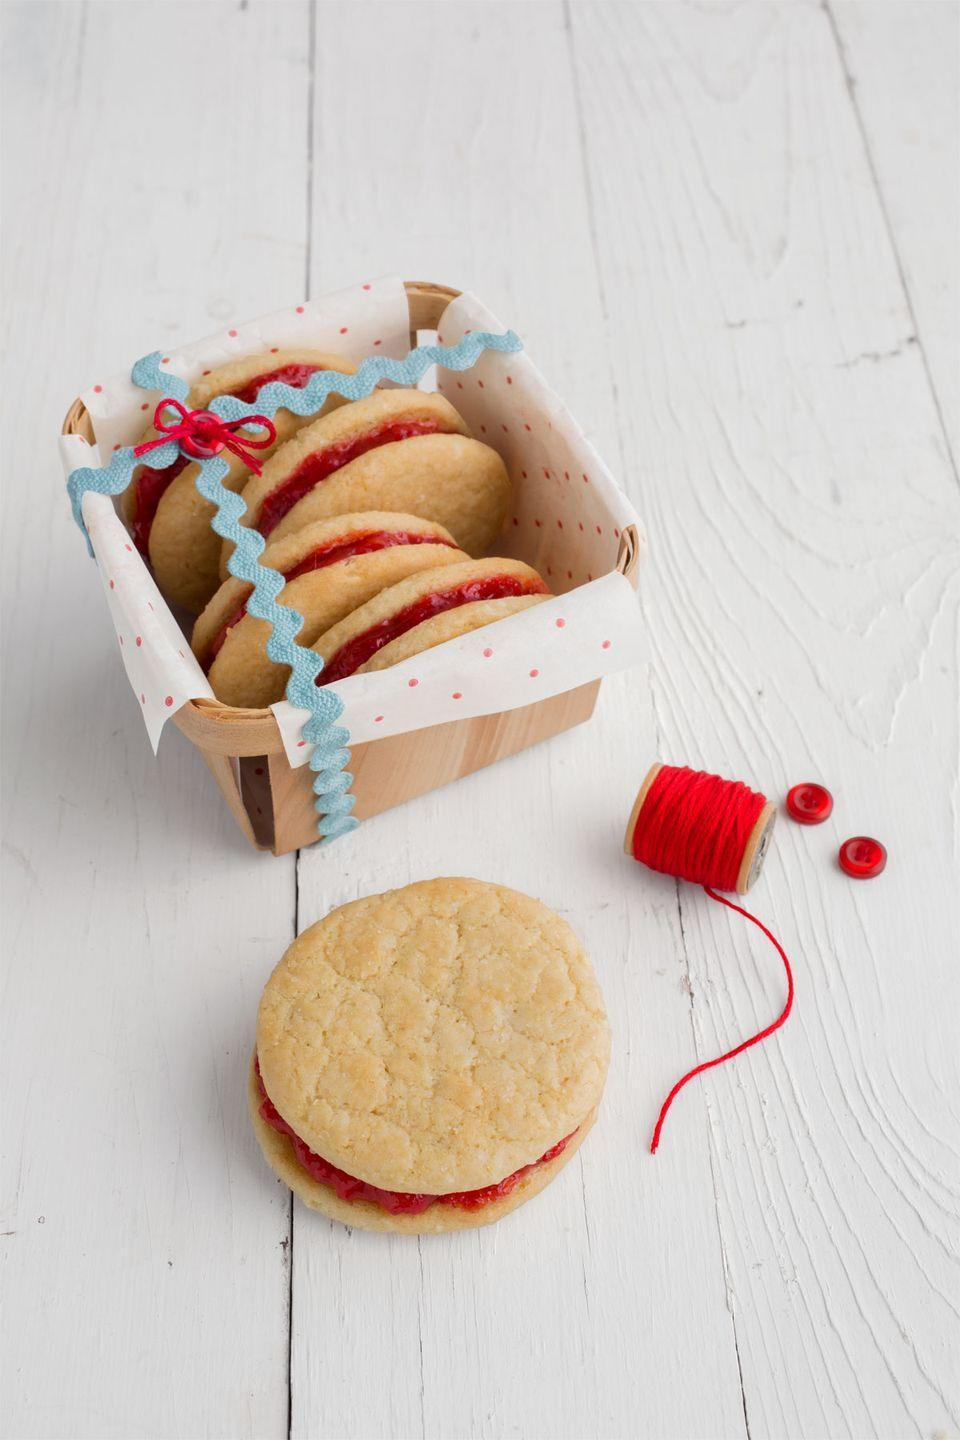 "<p>Line a berry basket with polka dot tissue paper and add cookies. Wrap with rickrack, and sew in place with a button and embroidery thread.</p><p><strong><a href=""https://www.countryliving.com/food-drinks/recipes/a36898/biscuit-jam-cookies/"" rel=""nofollow noopener"" target=""_blank"" data-ylk=""slk:Get the recipe."" class=""link rapid-noclick-resp"">Get the recipe.</a></strong></p>"